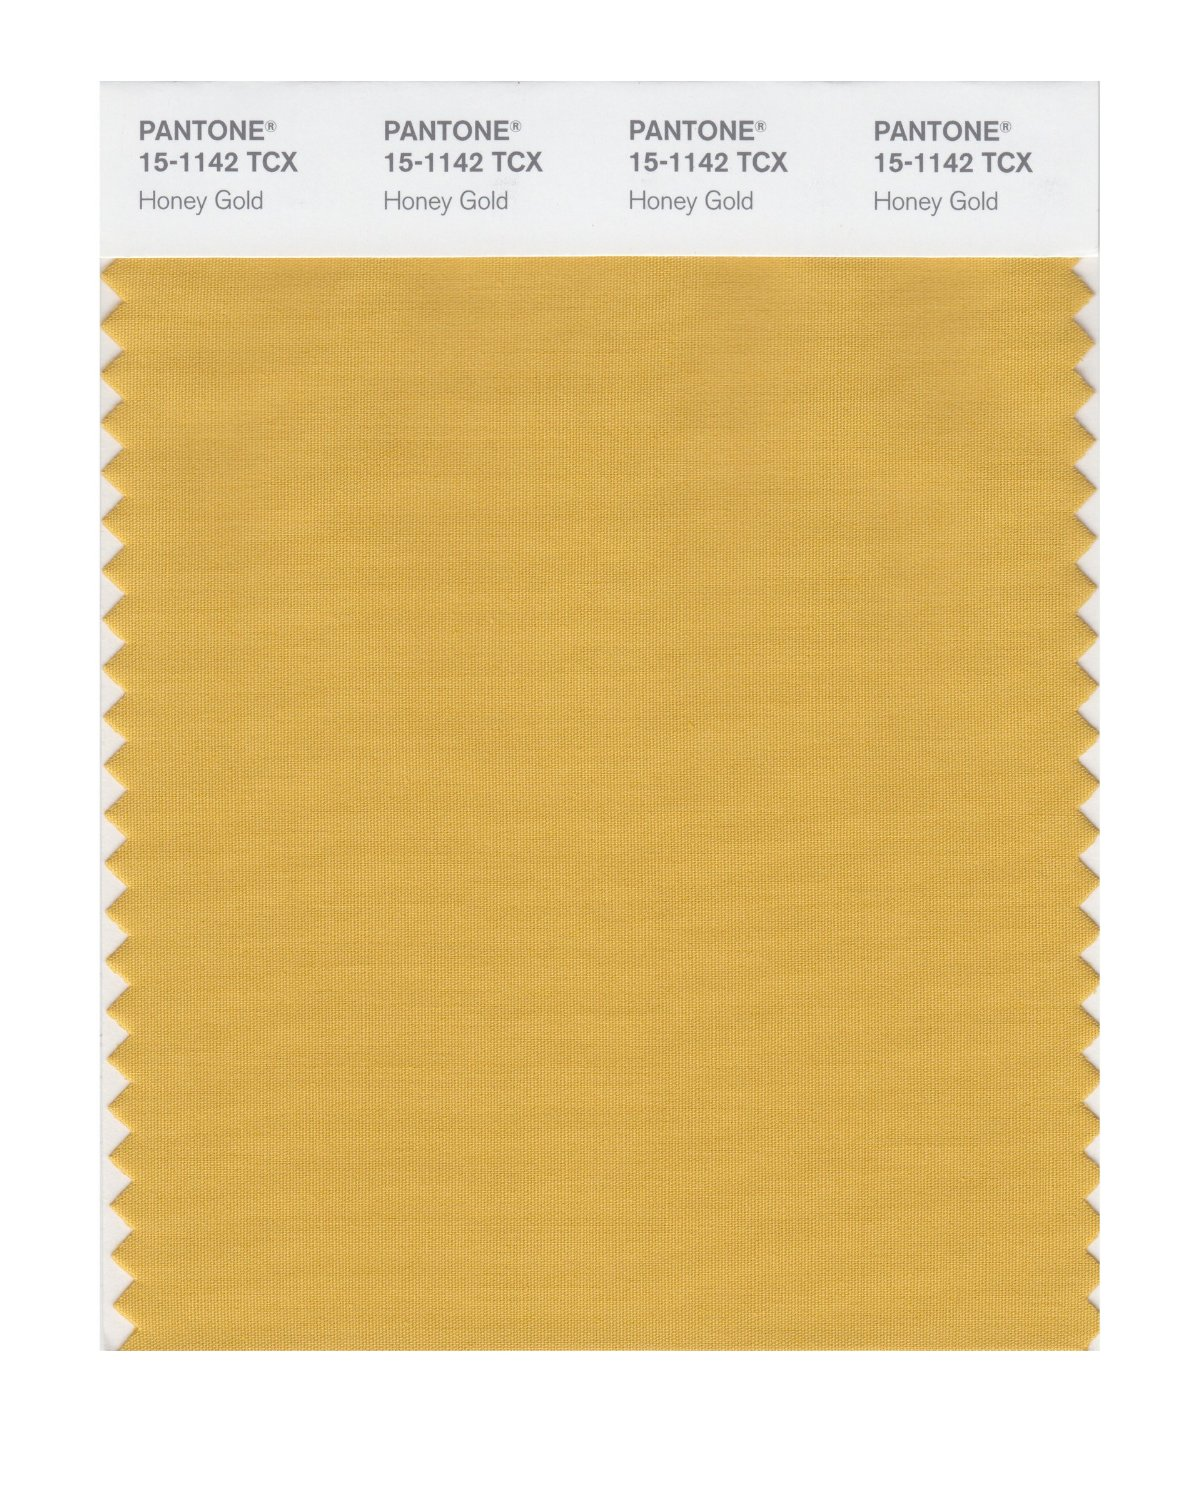 Pantone Smart Swatch 15-1142 Honey Gold